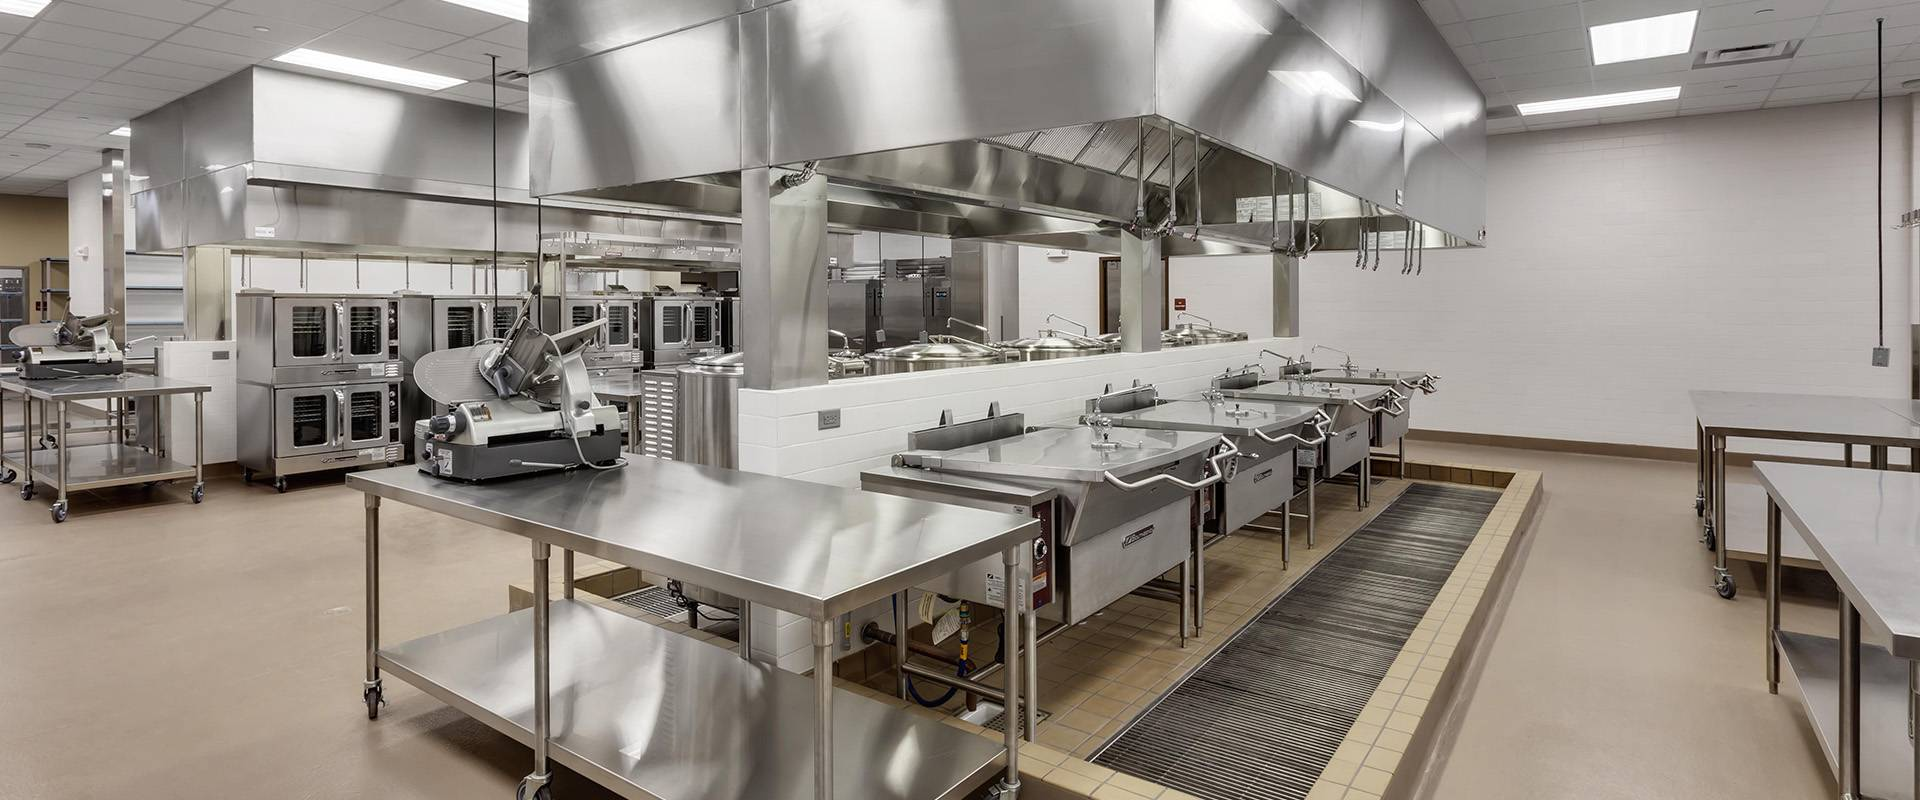 Commercial cleaning for kitchens.